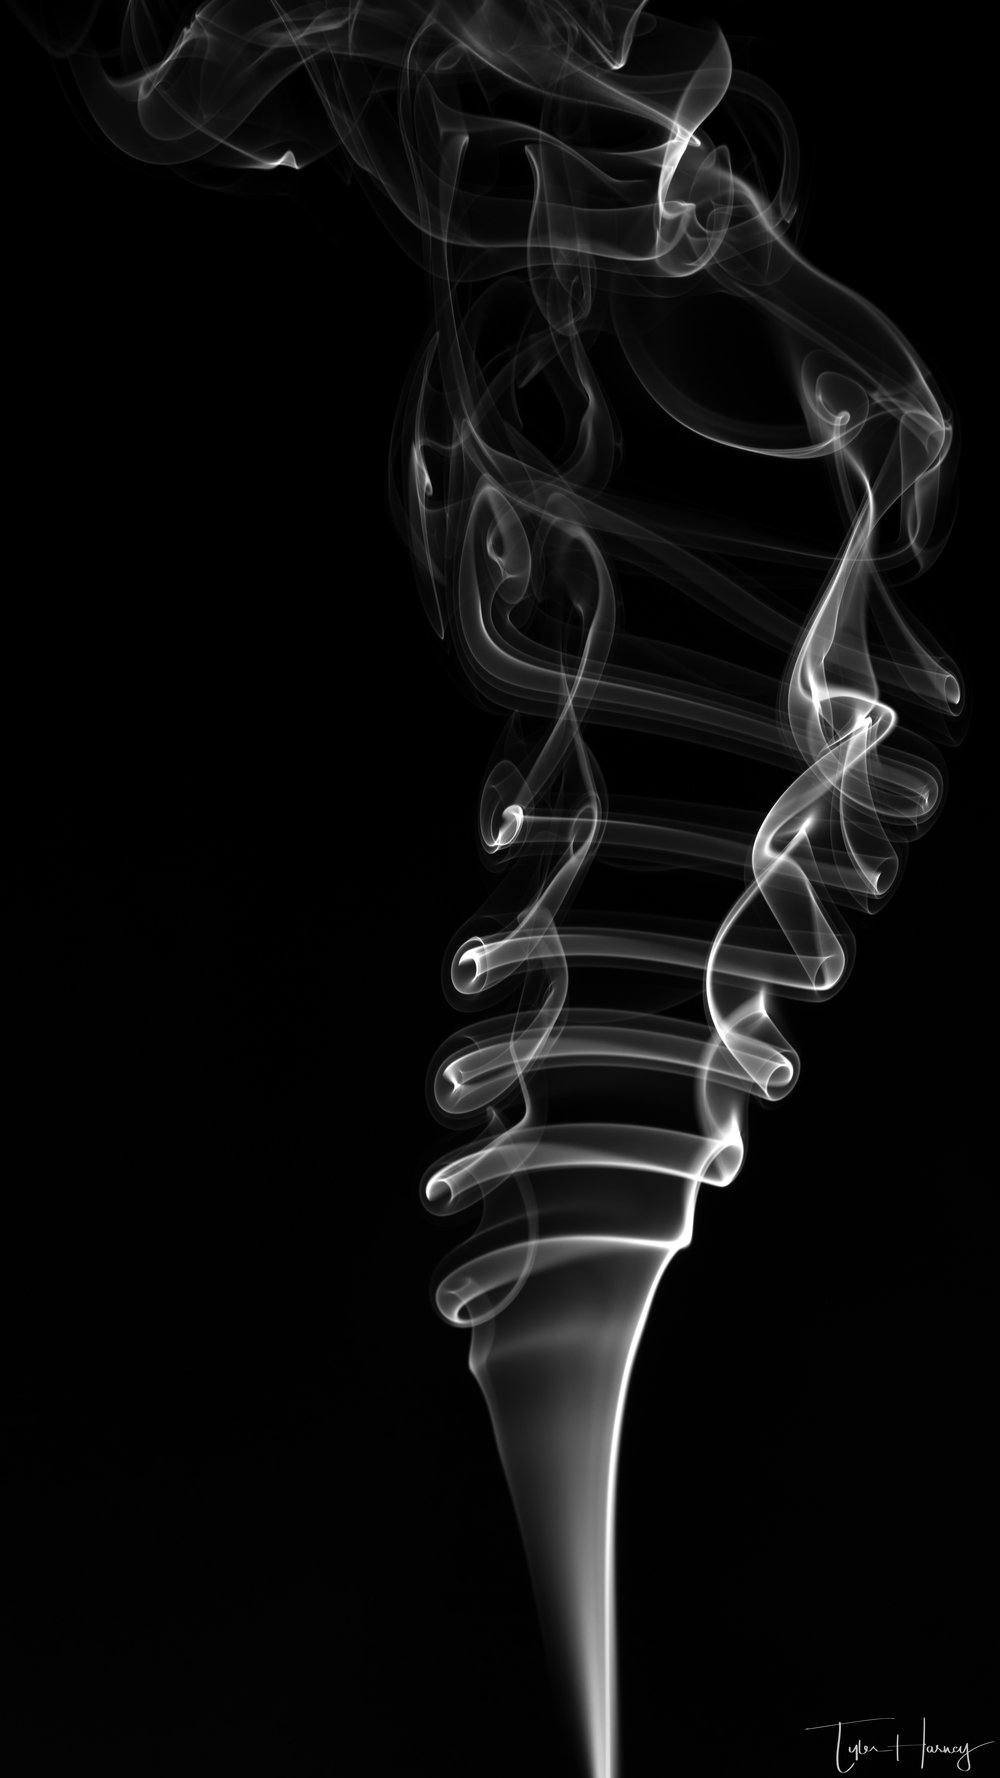 Smoke Trail Sig (Black and White).jpg